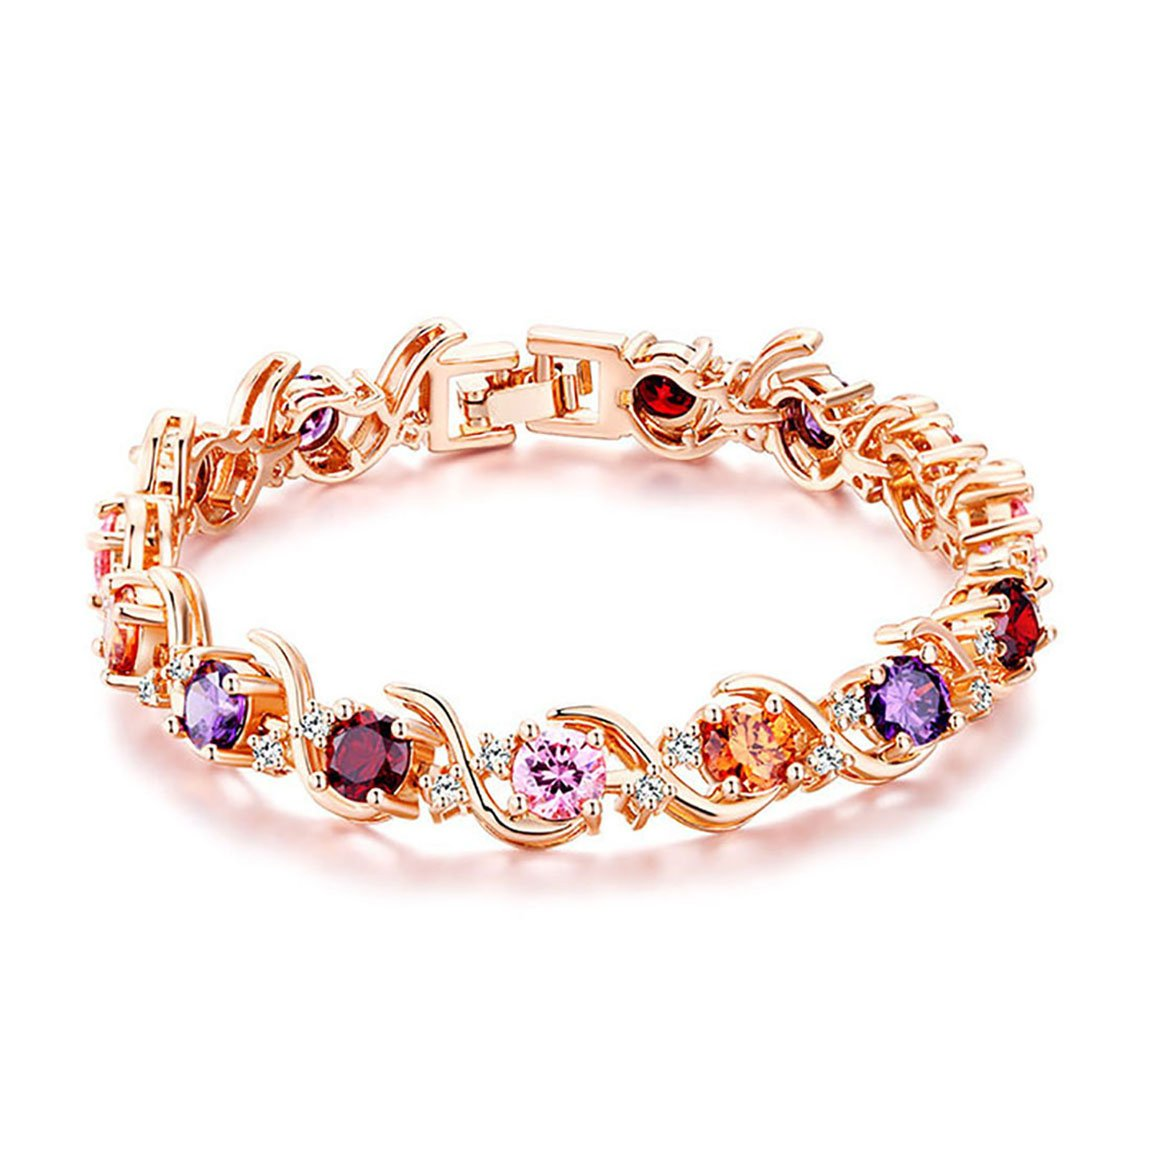 Foruinvent Luxury Rose Gold Plated Crystal Wedding Bridal Bracelet Valentine's Day Lovers Gift